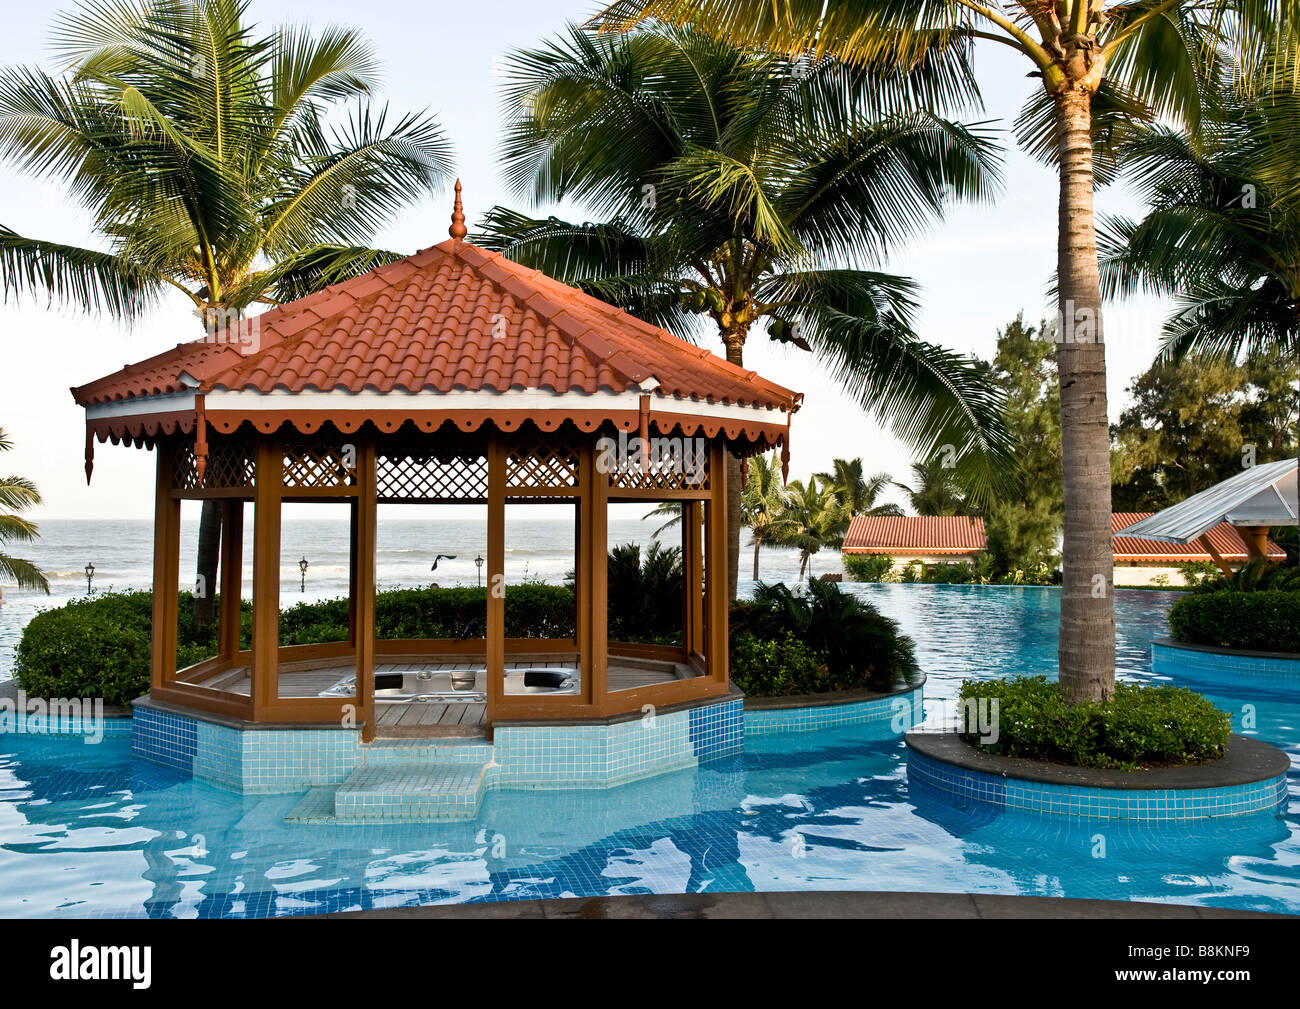 Cool Gazebo In Swimming Pool Surrounded By Islands Of Palm Trees Near Stock Photo 22561597 Alamy